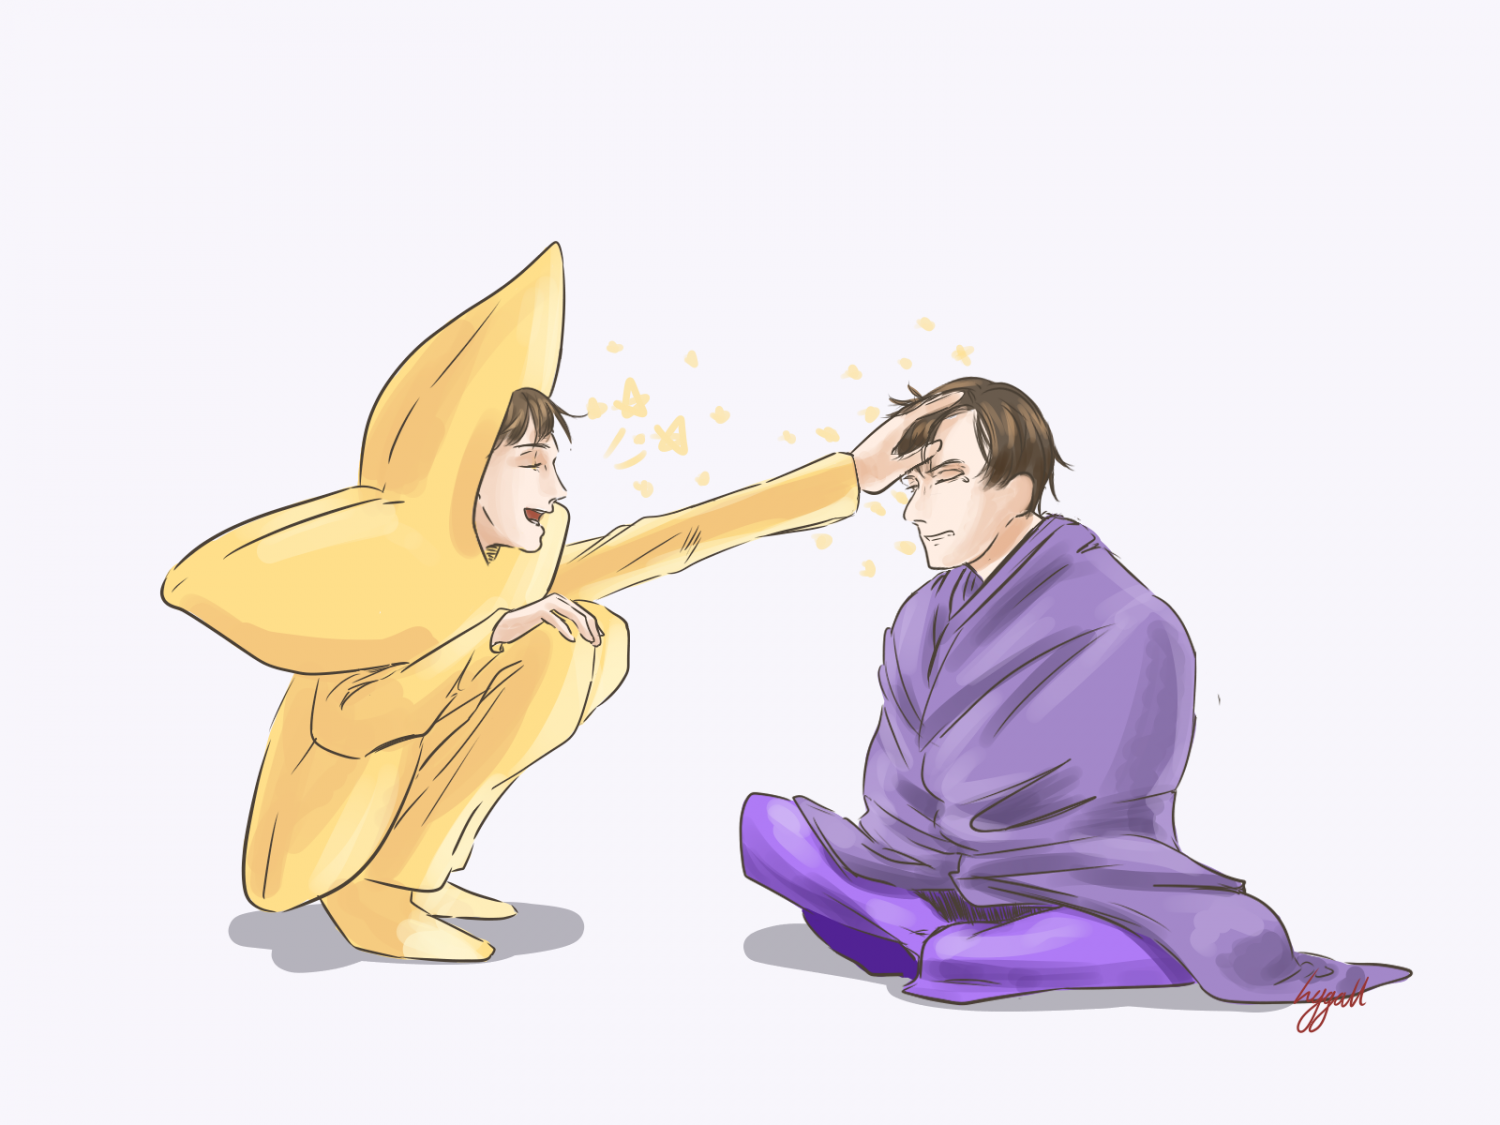 Star and Kevin in the puple blanket 2.png